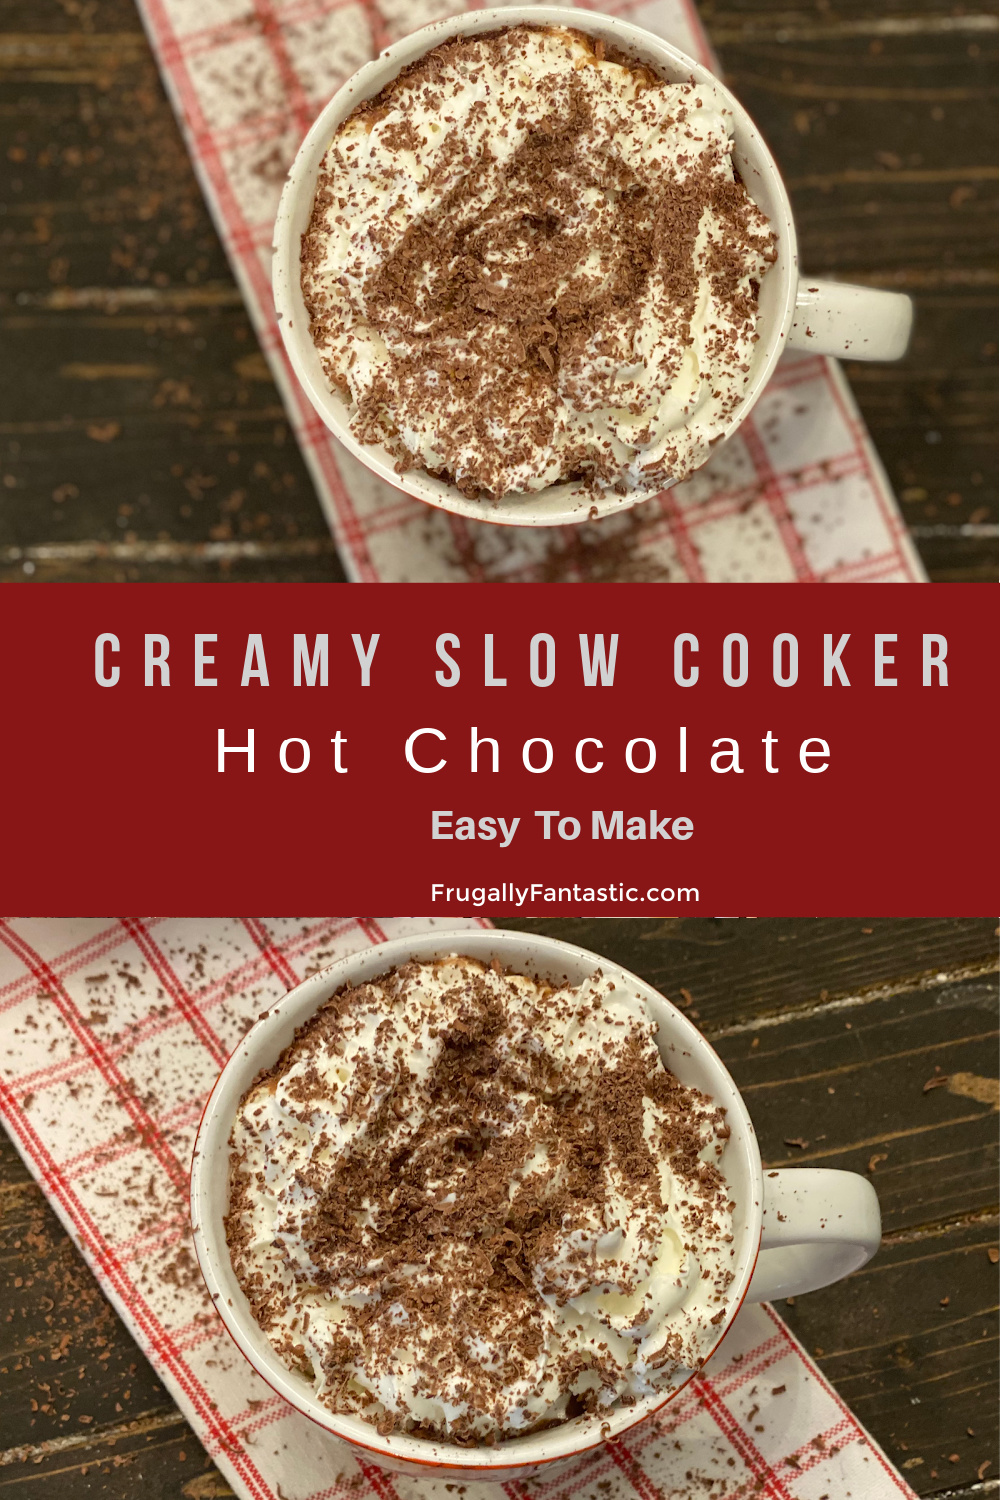 Slow Cooker Hot Chocolate FrugallyFantastic.com